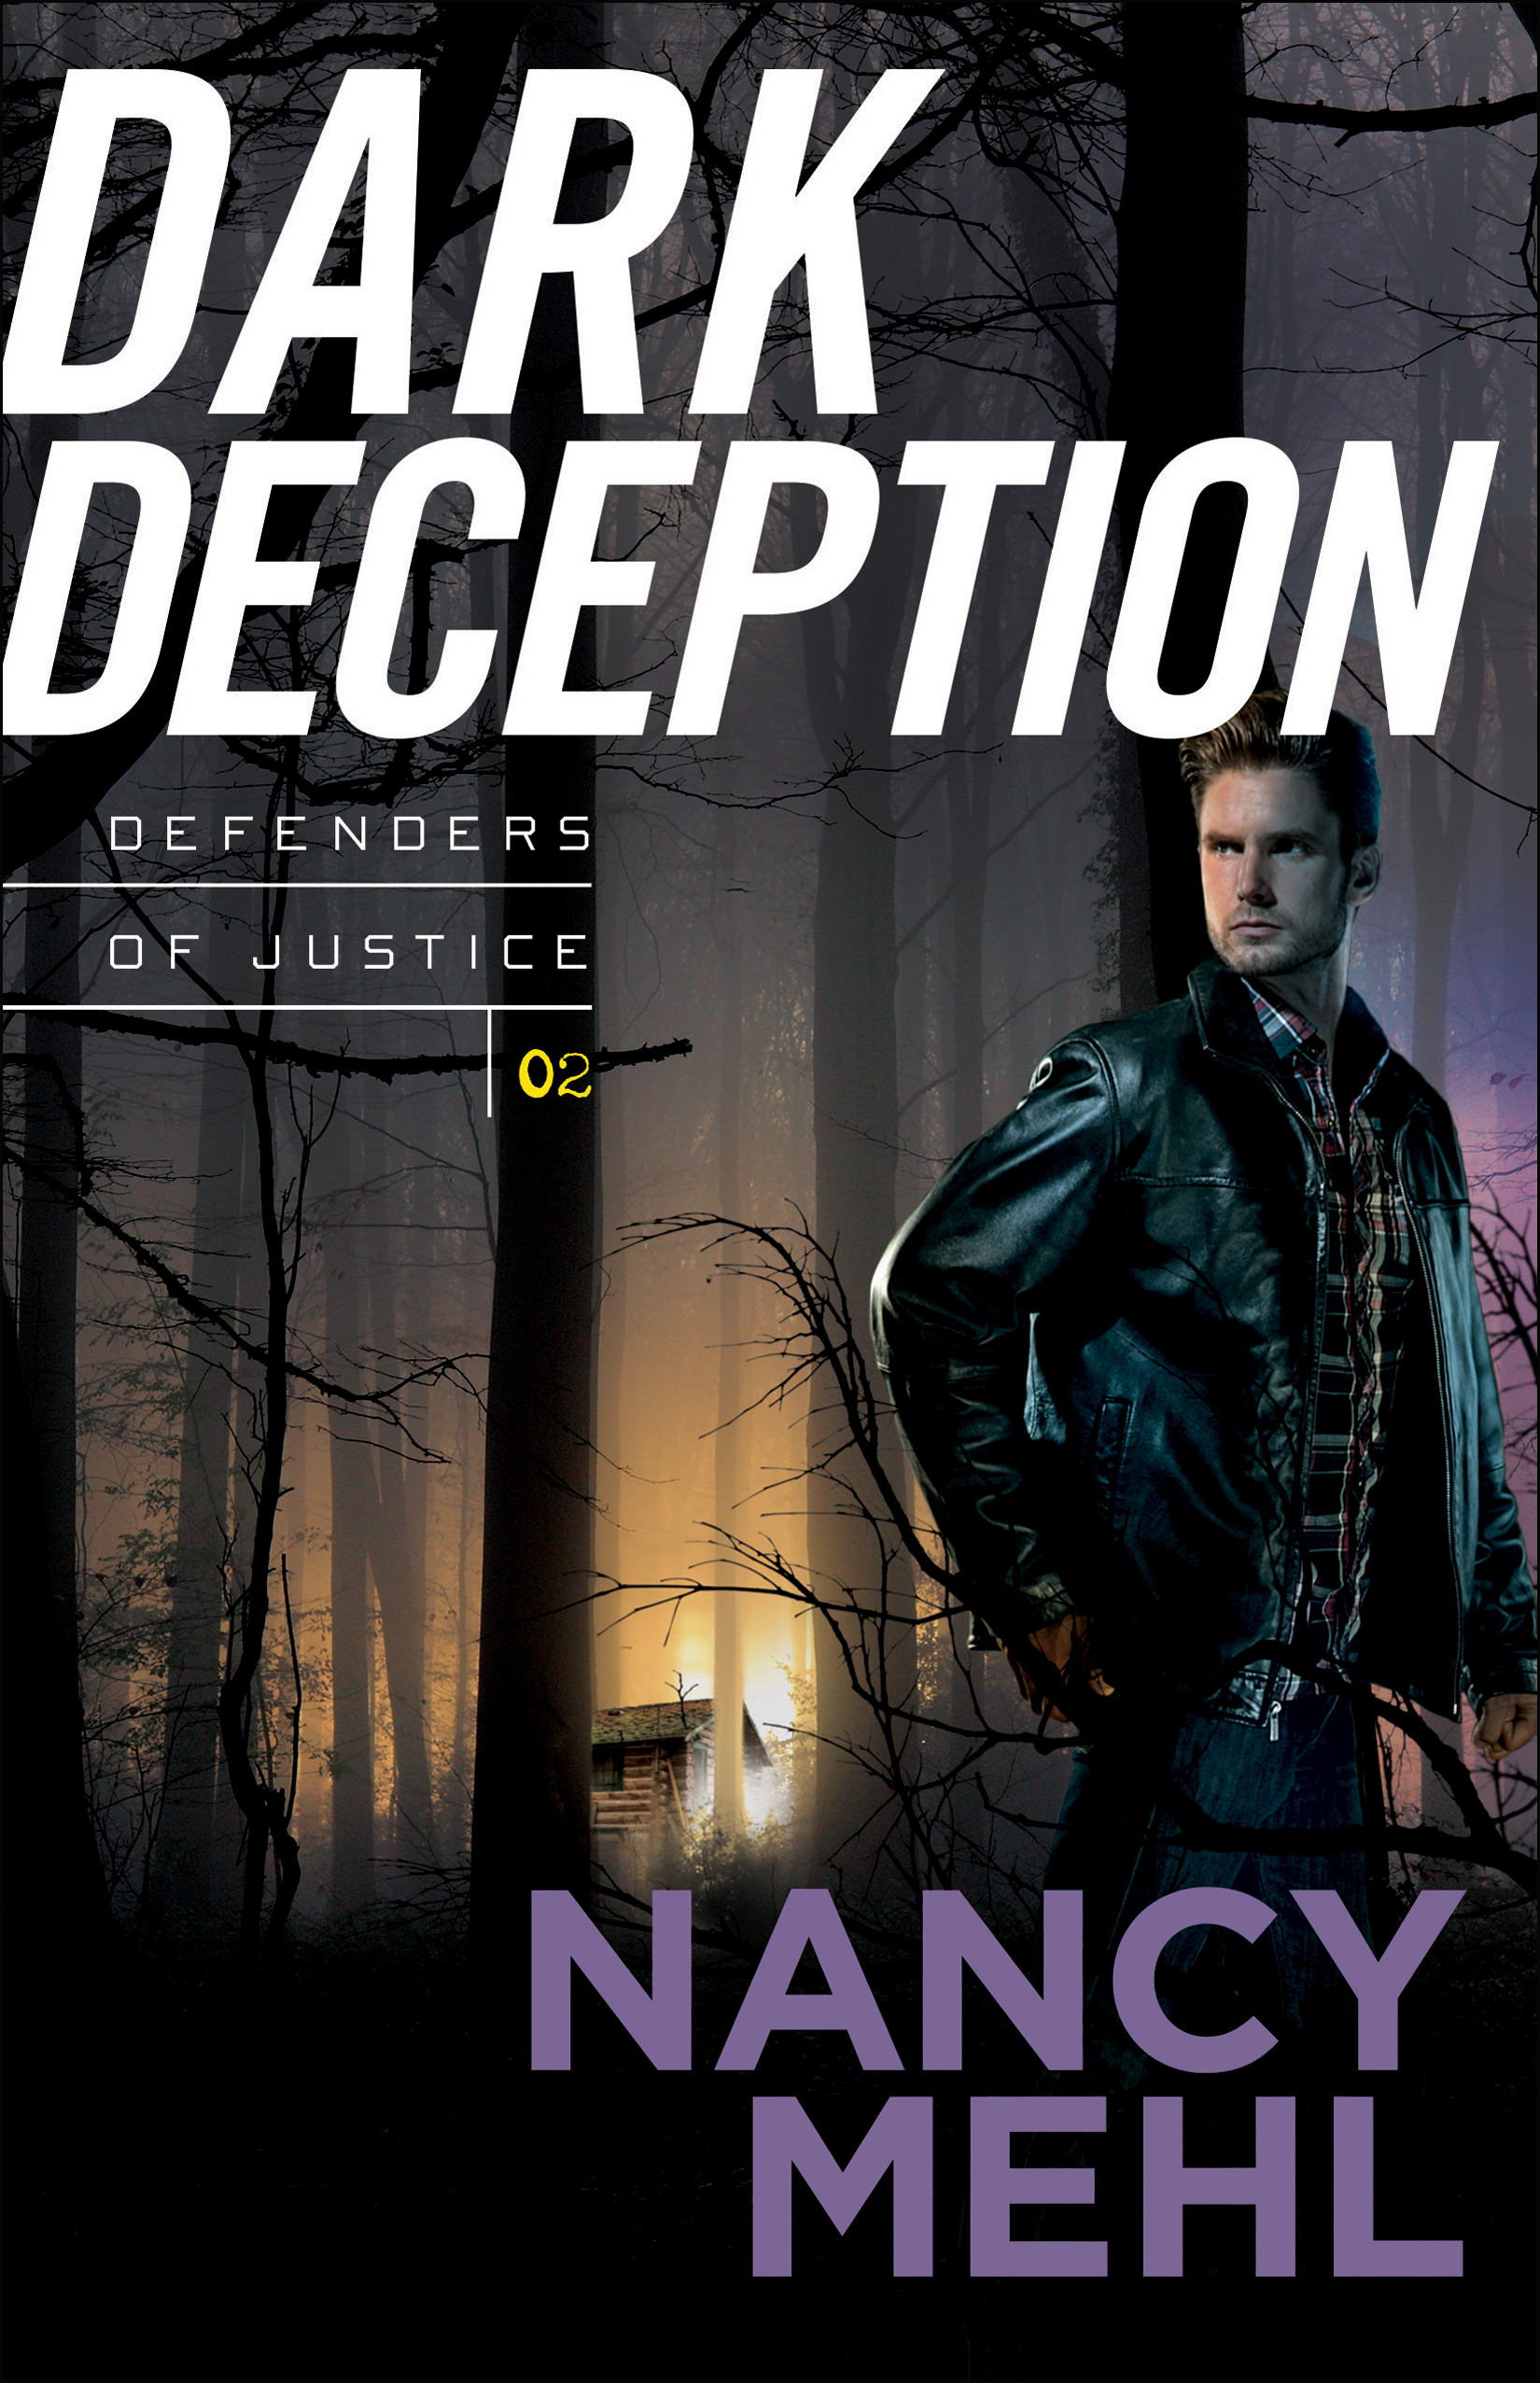 Book review of Dark Deception by Nancy Mehl (Bethany House) by papertapepins